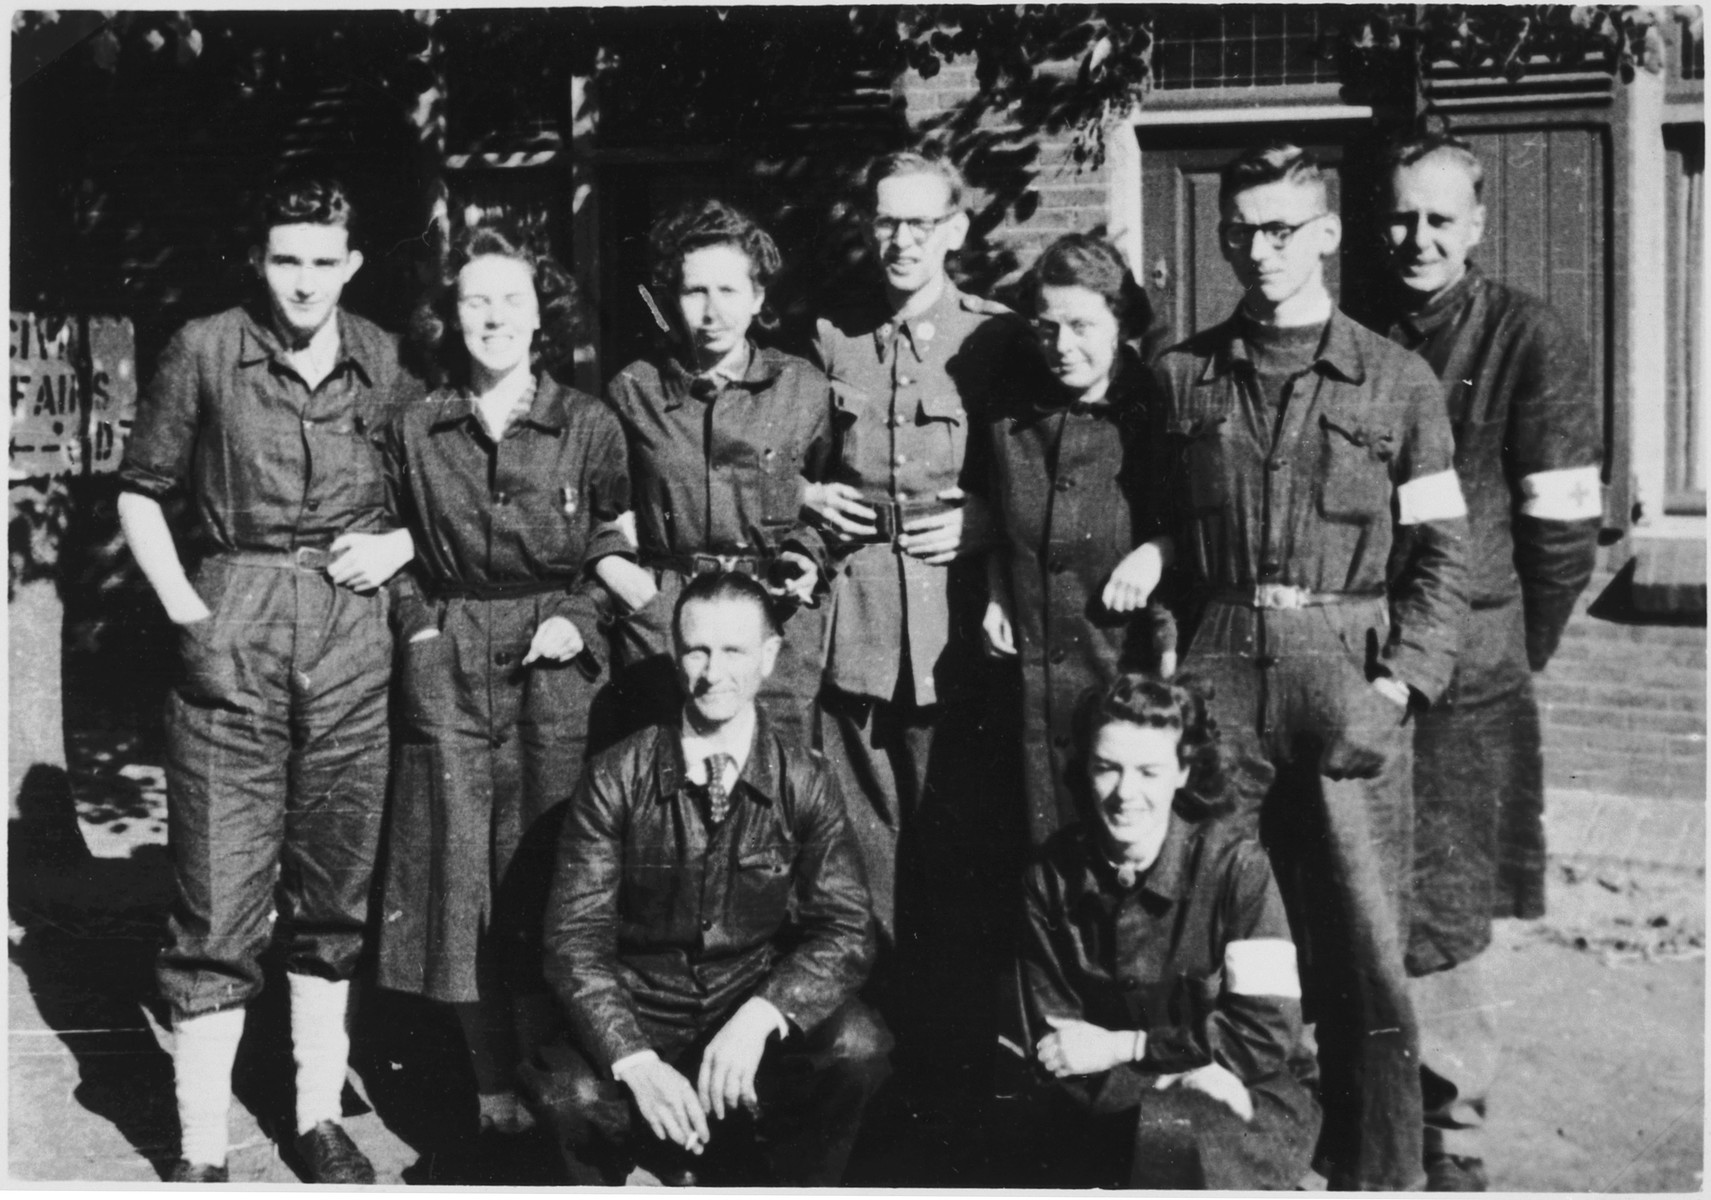 Group portrait of Red Cross workers in the newly liberated Bergen-Belsen concentration camp.